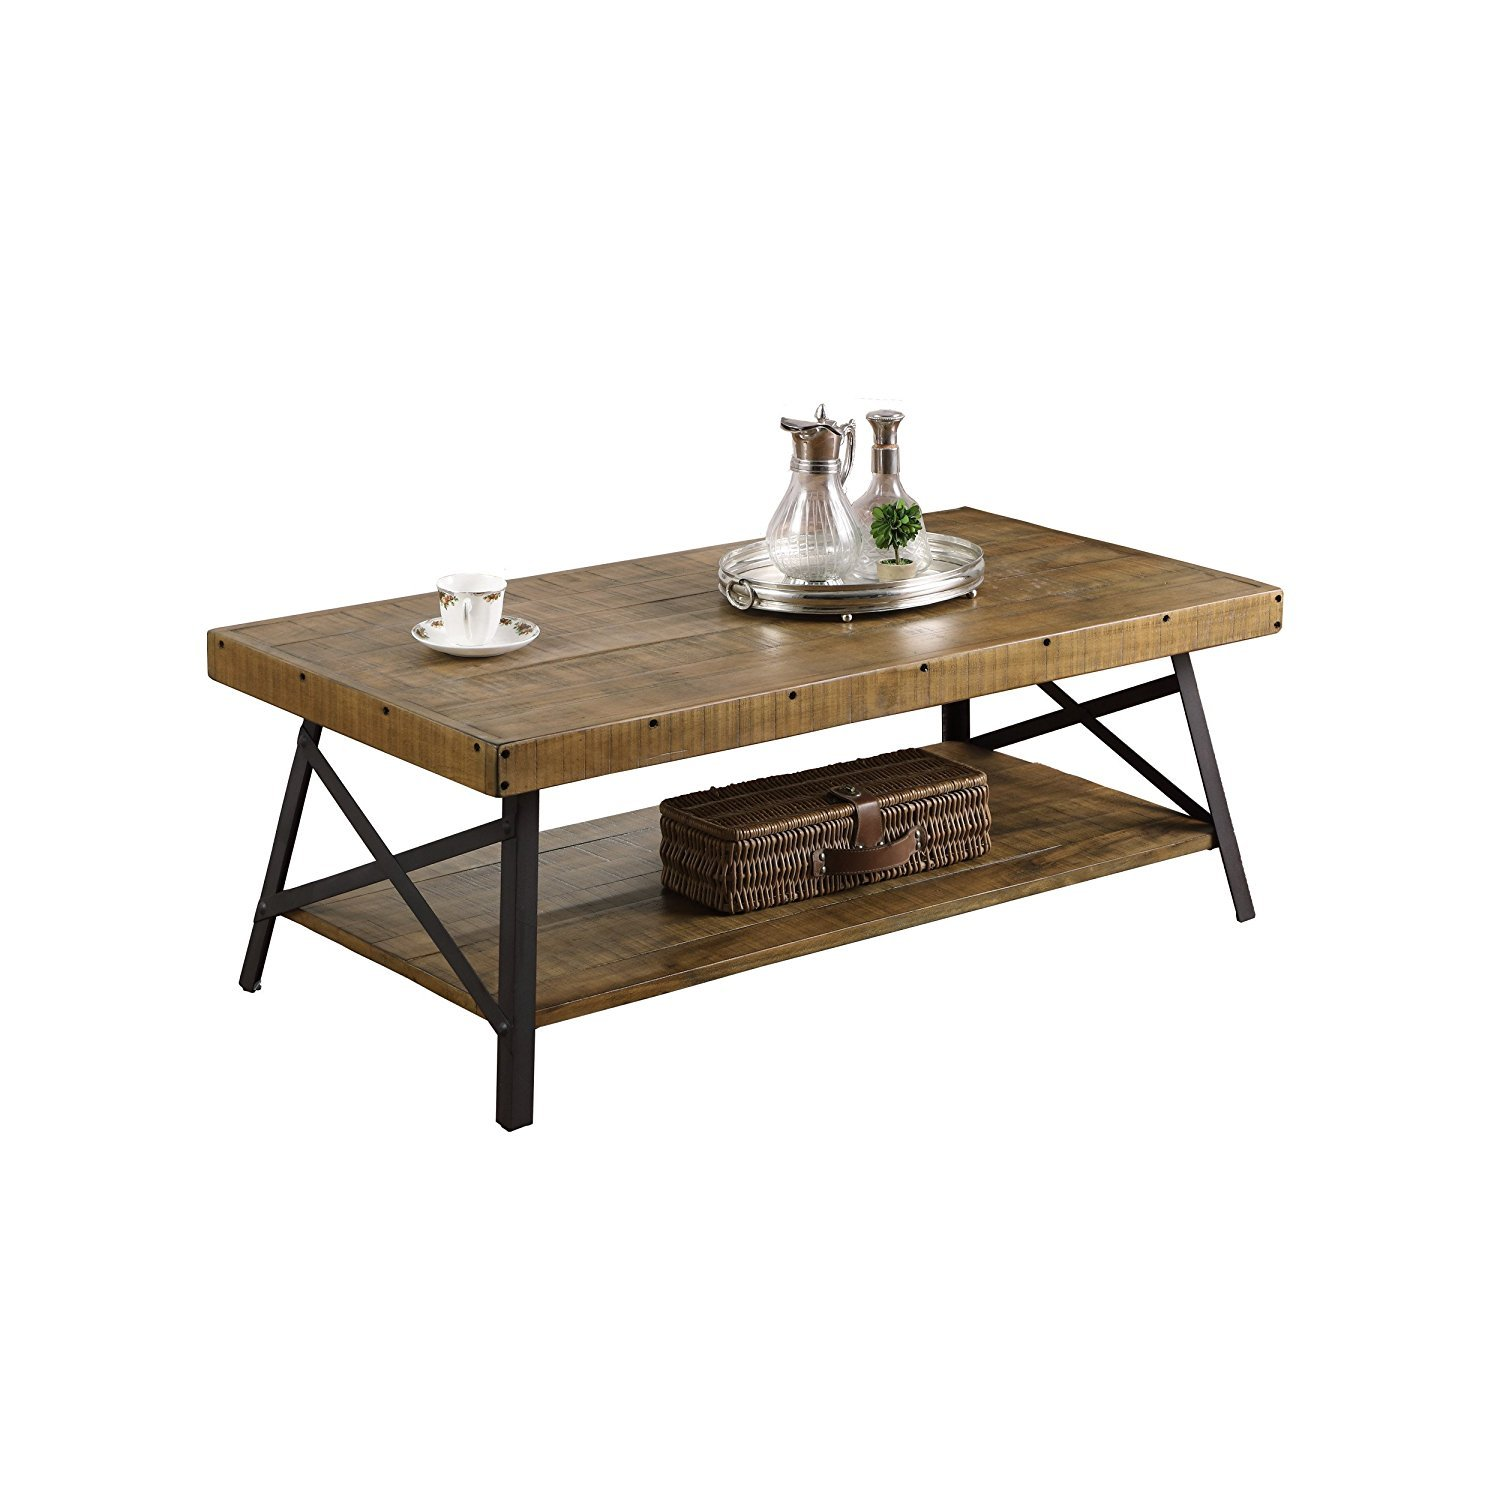 Premium Rustic Wooden Coffee Table Furniture with Storage for Any Home And Living Room